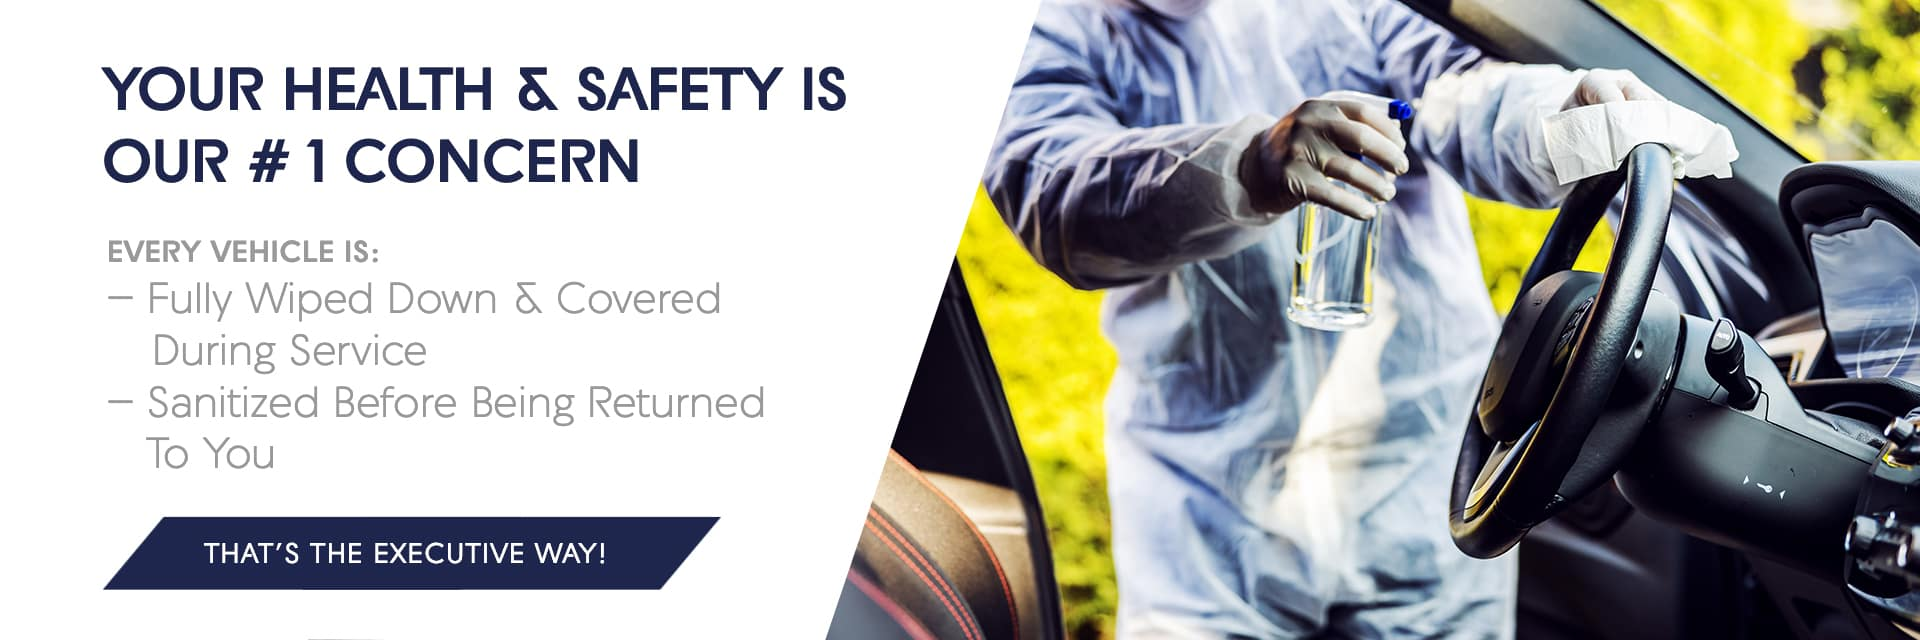 EAG_BAcura_Safety Is Our #1 Concern